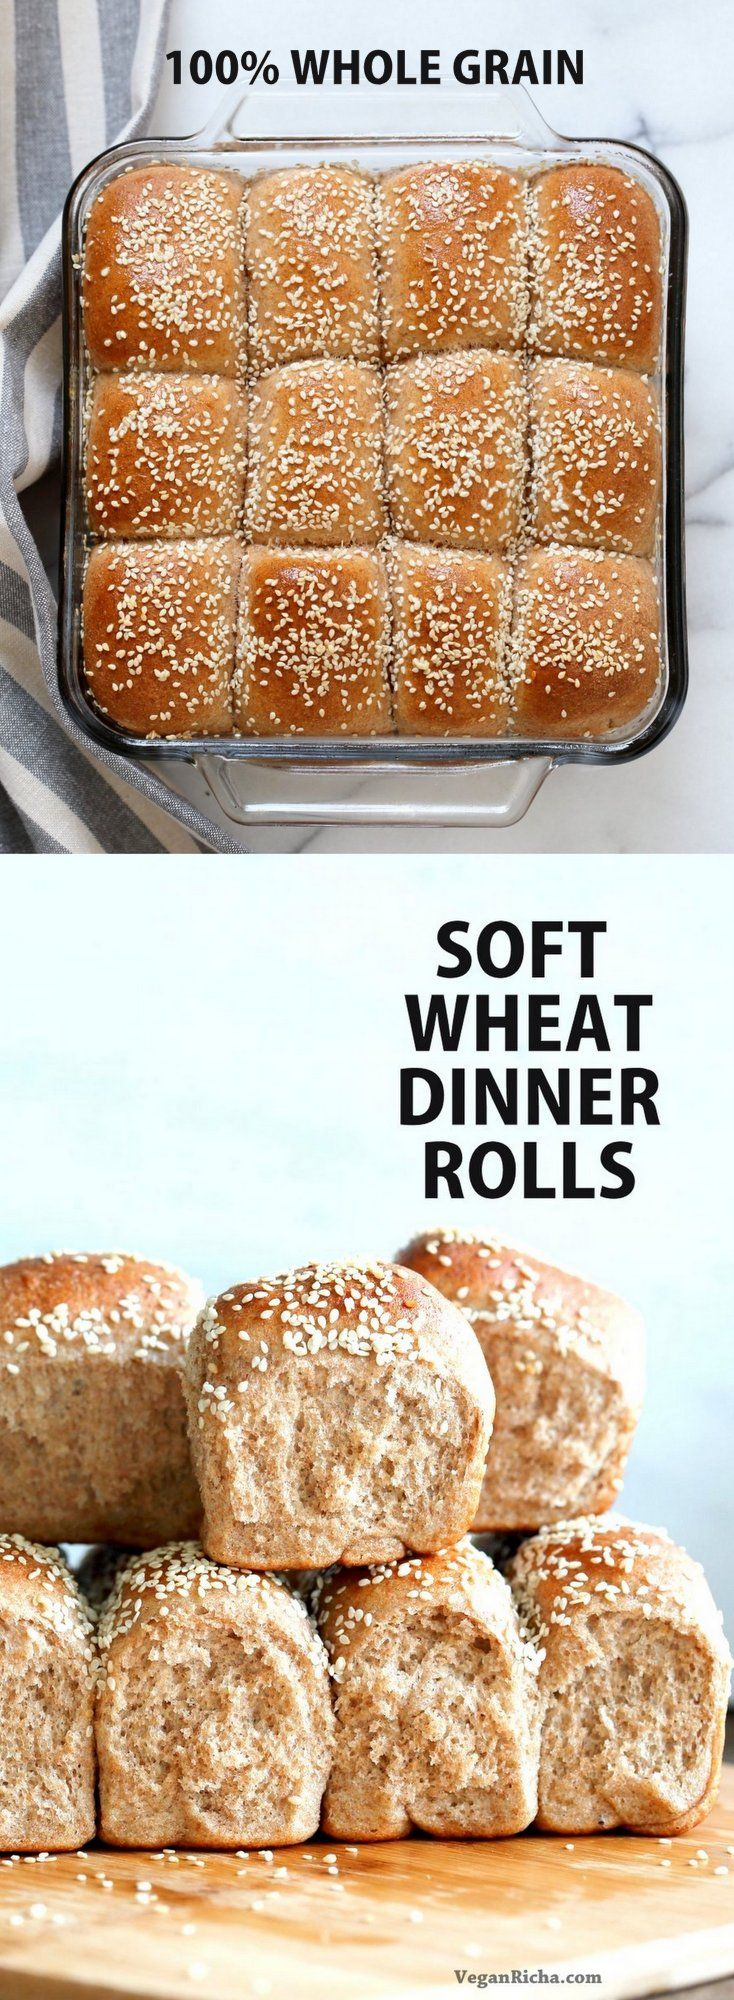 Soft Whole Wheat Dinner Rolls - Vegan Richa